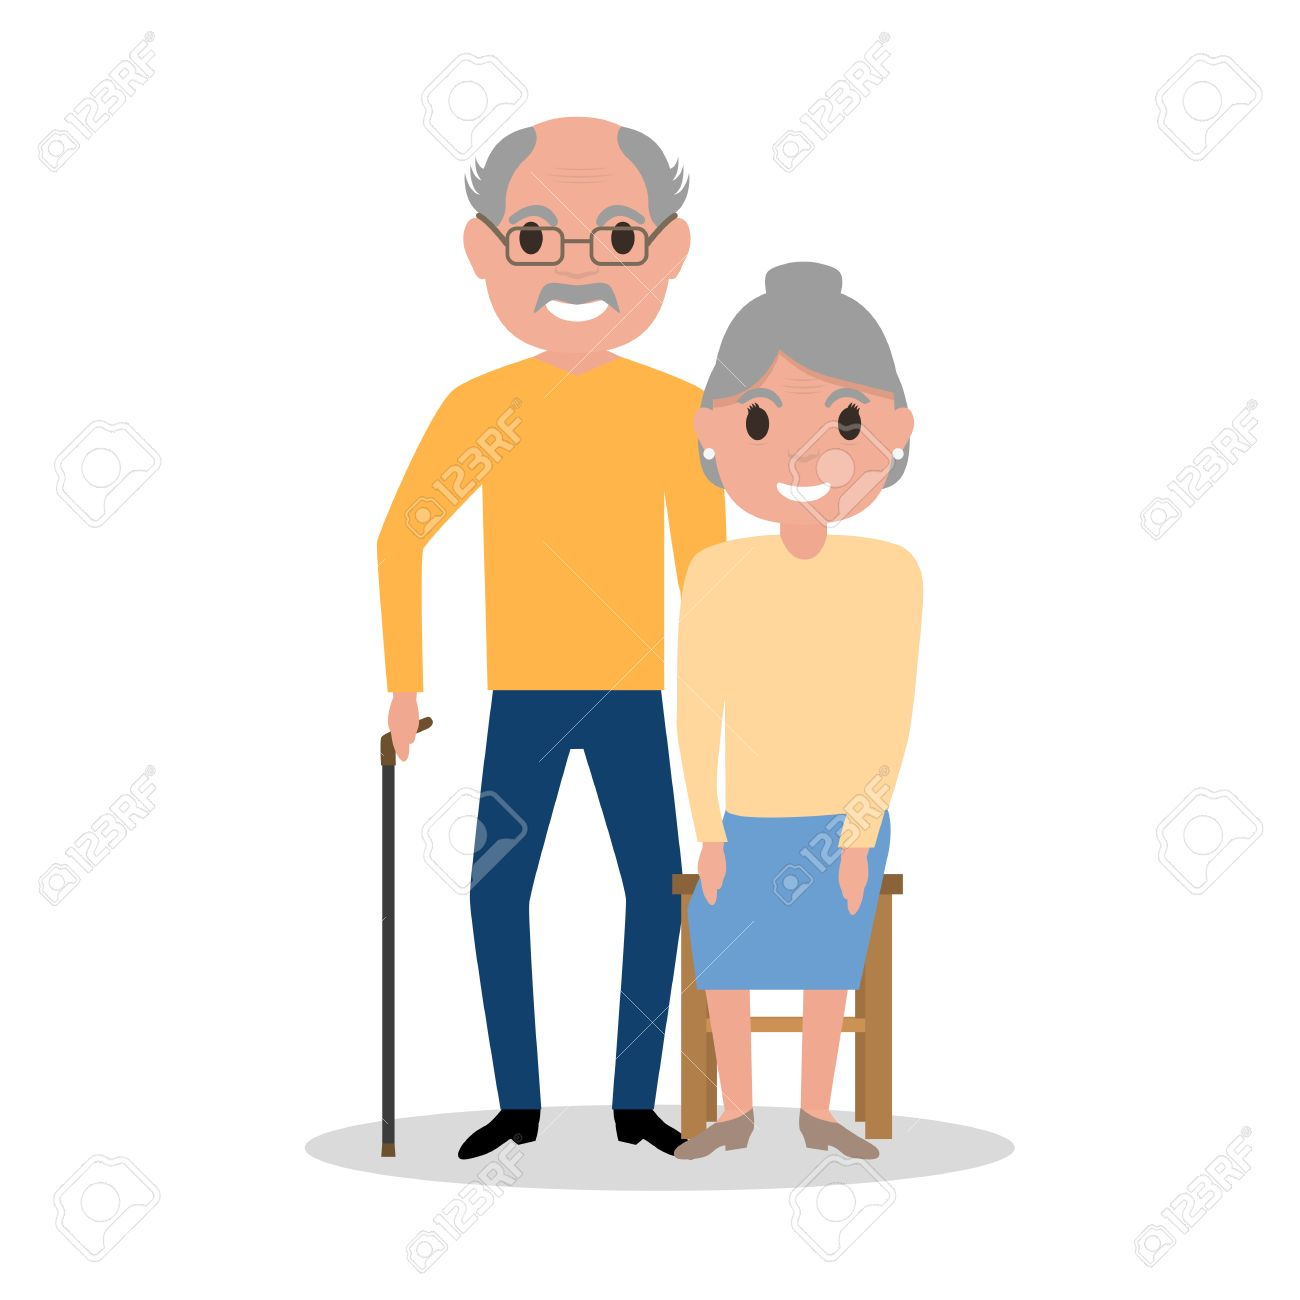 1300x1300 Vector Illustration Of An Elderly Couple Grandparents, Aged People